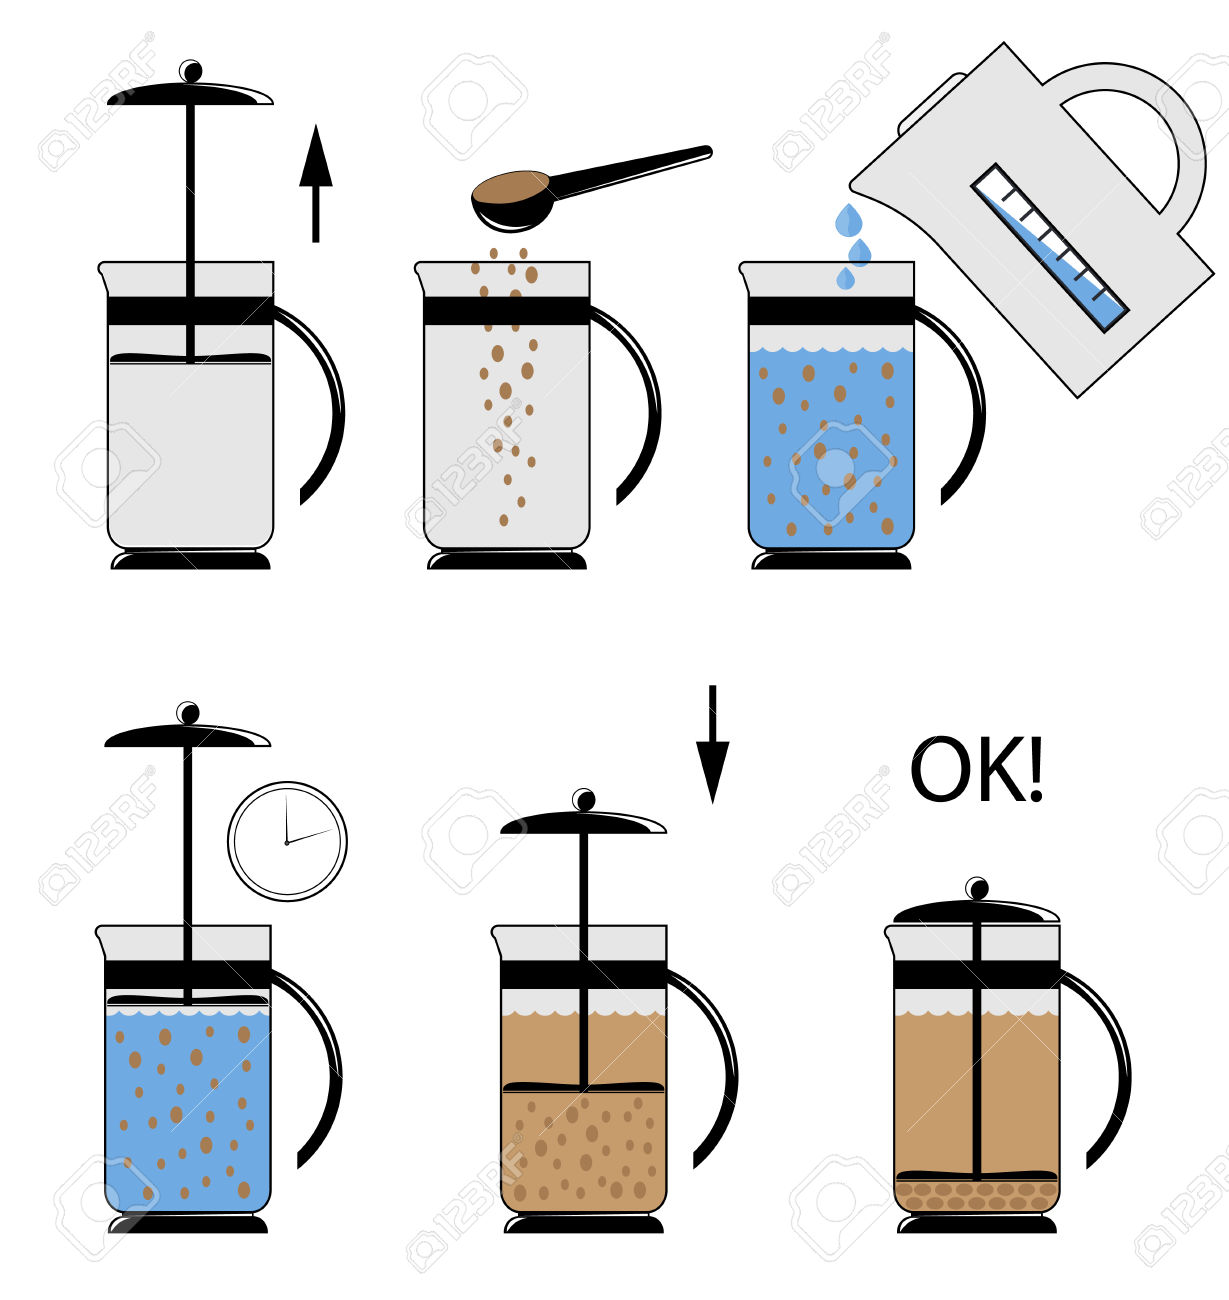 Vector Illustration. Instructions For Use Teapot.